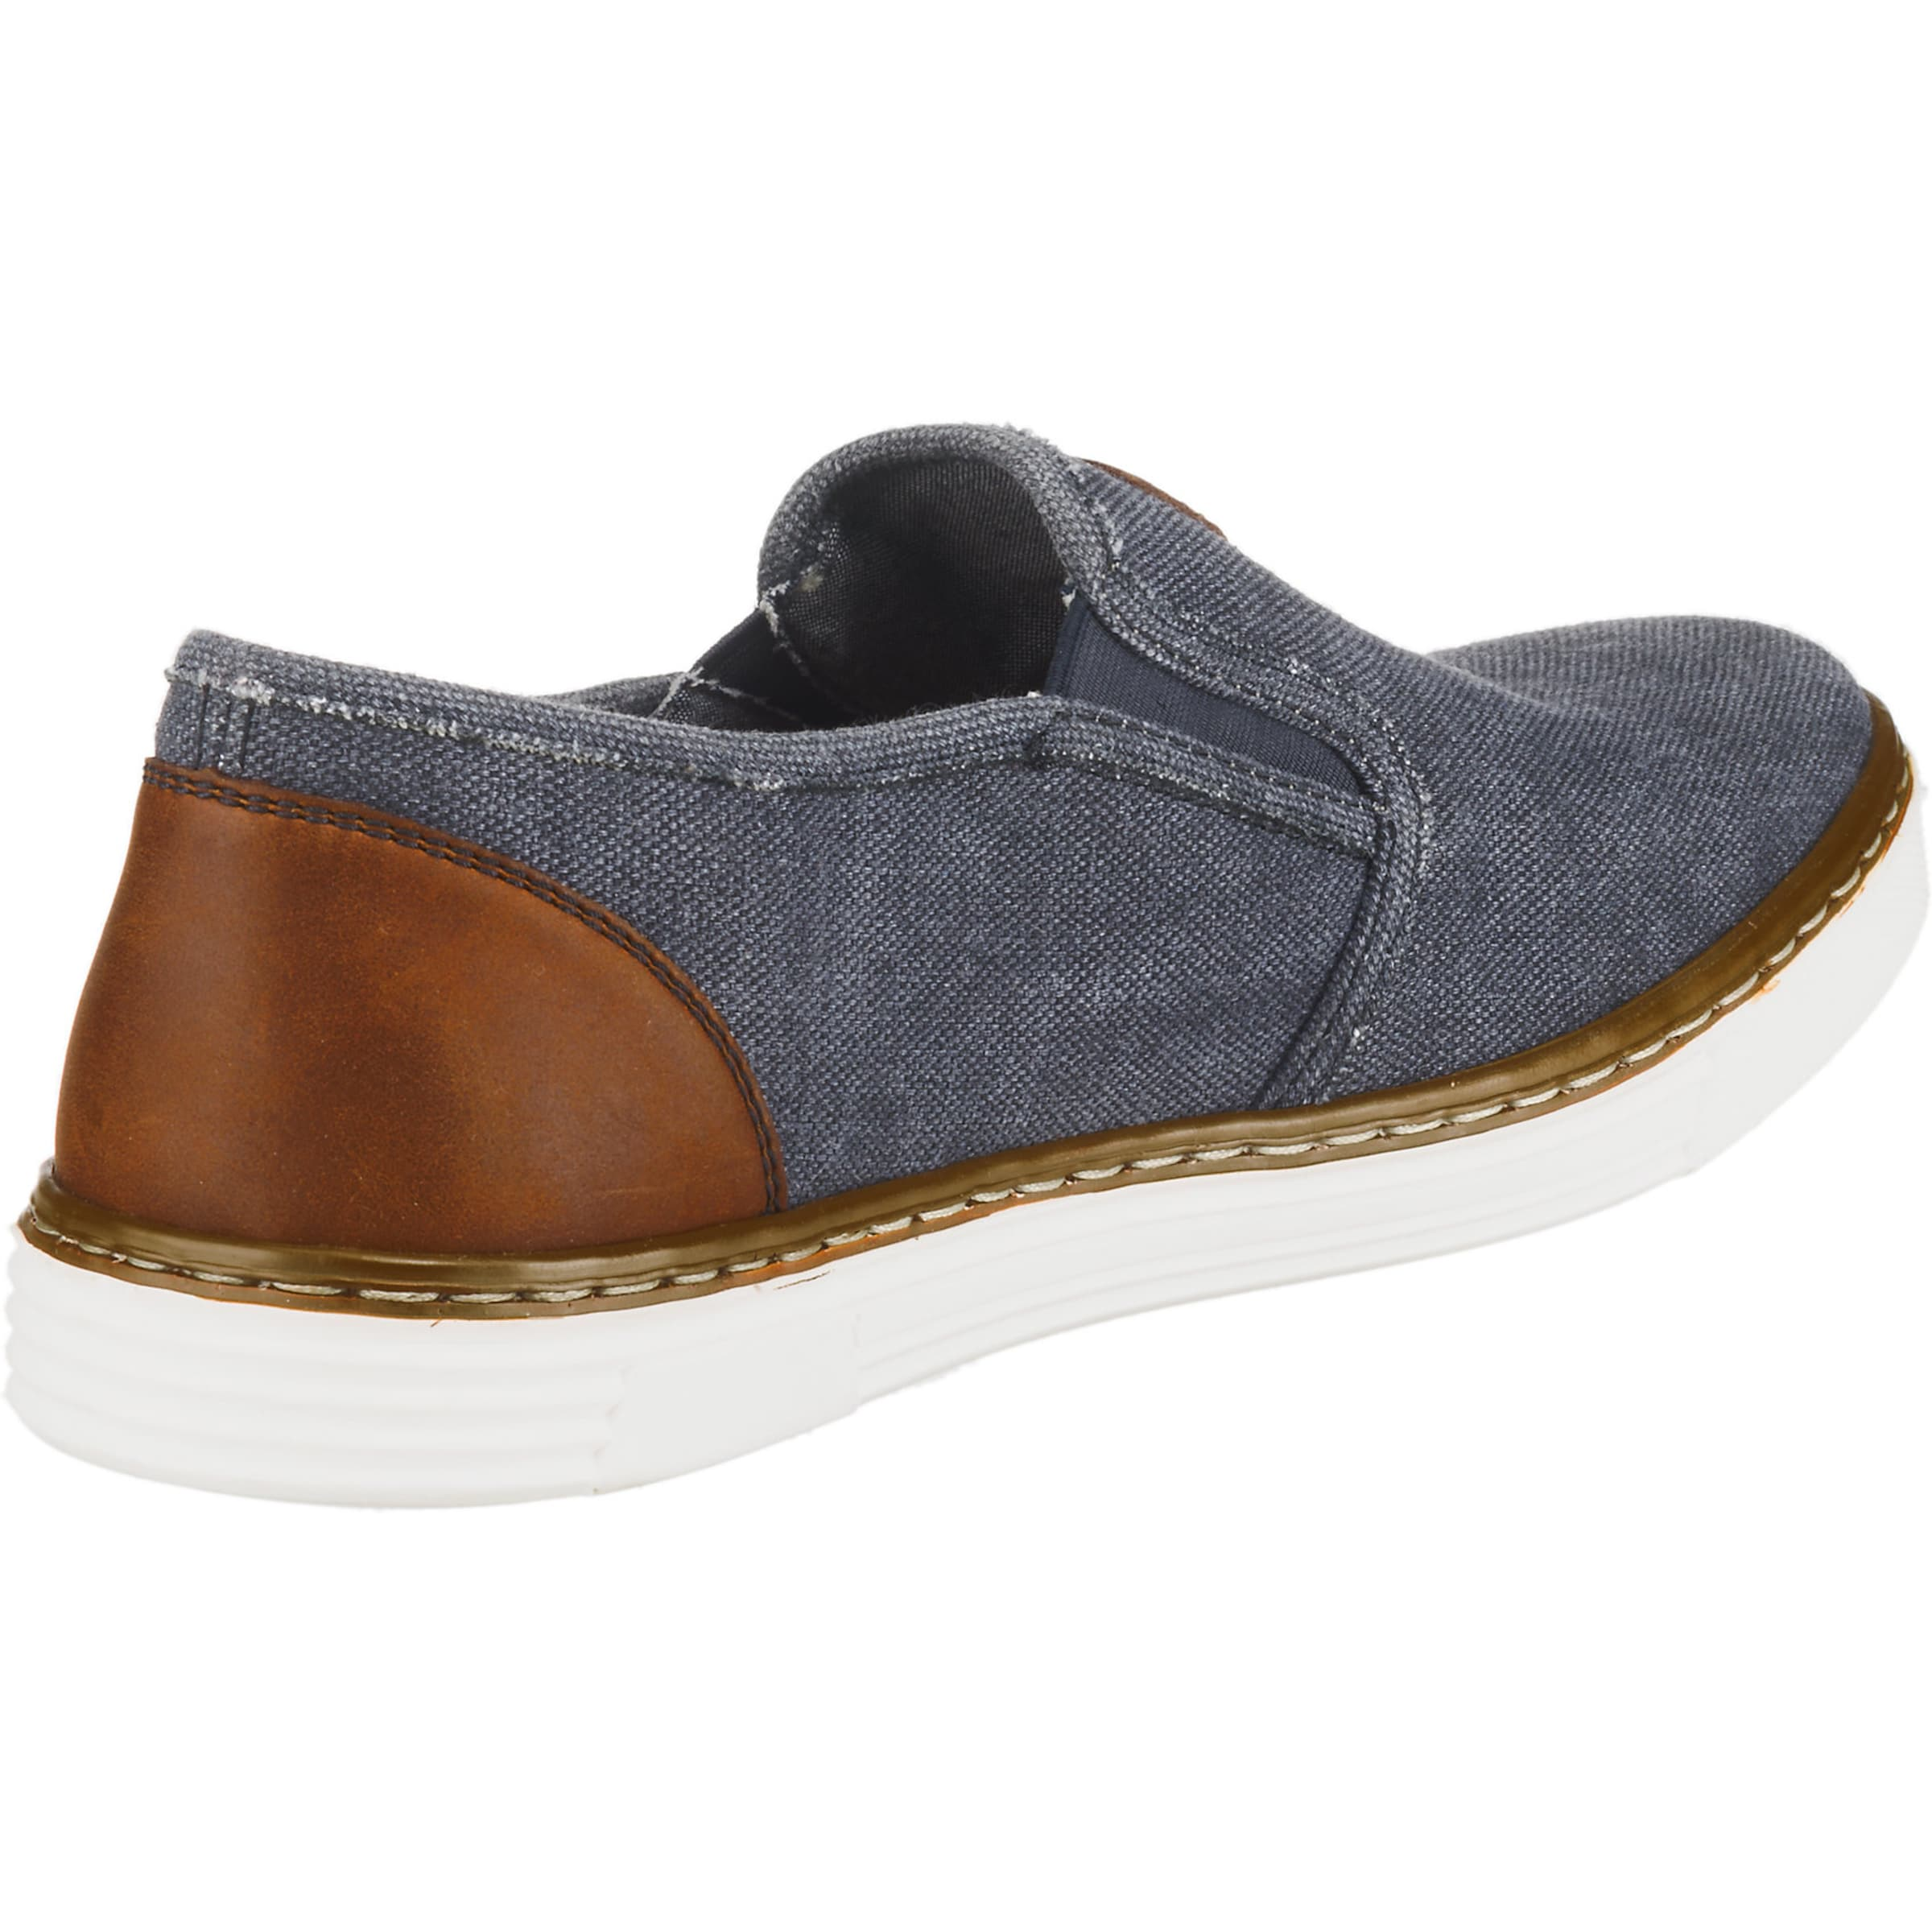 Rieker Slipper Rieker DenimBraun In Blue In Slipper TF1c3JlK